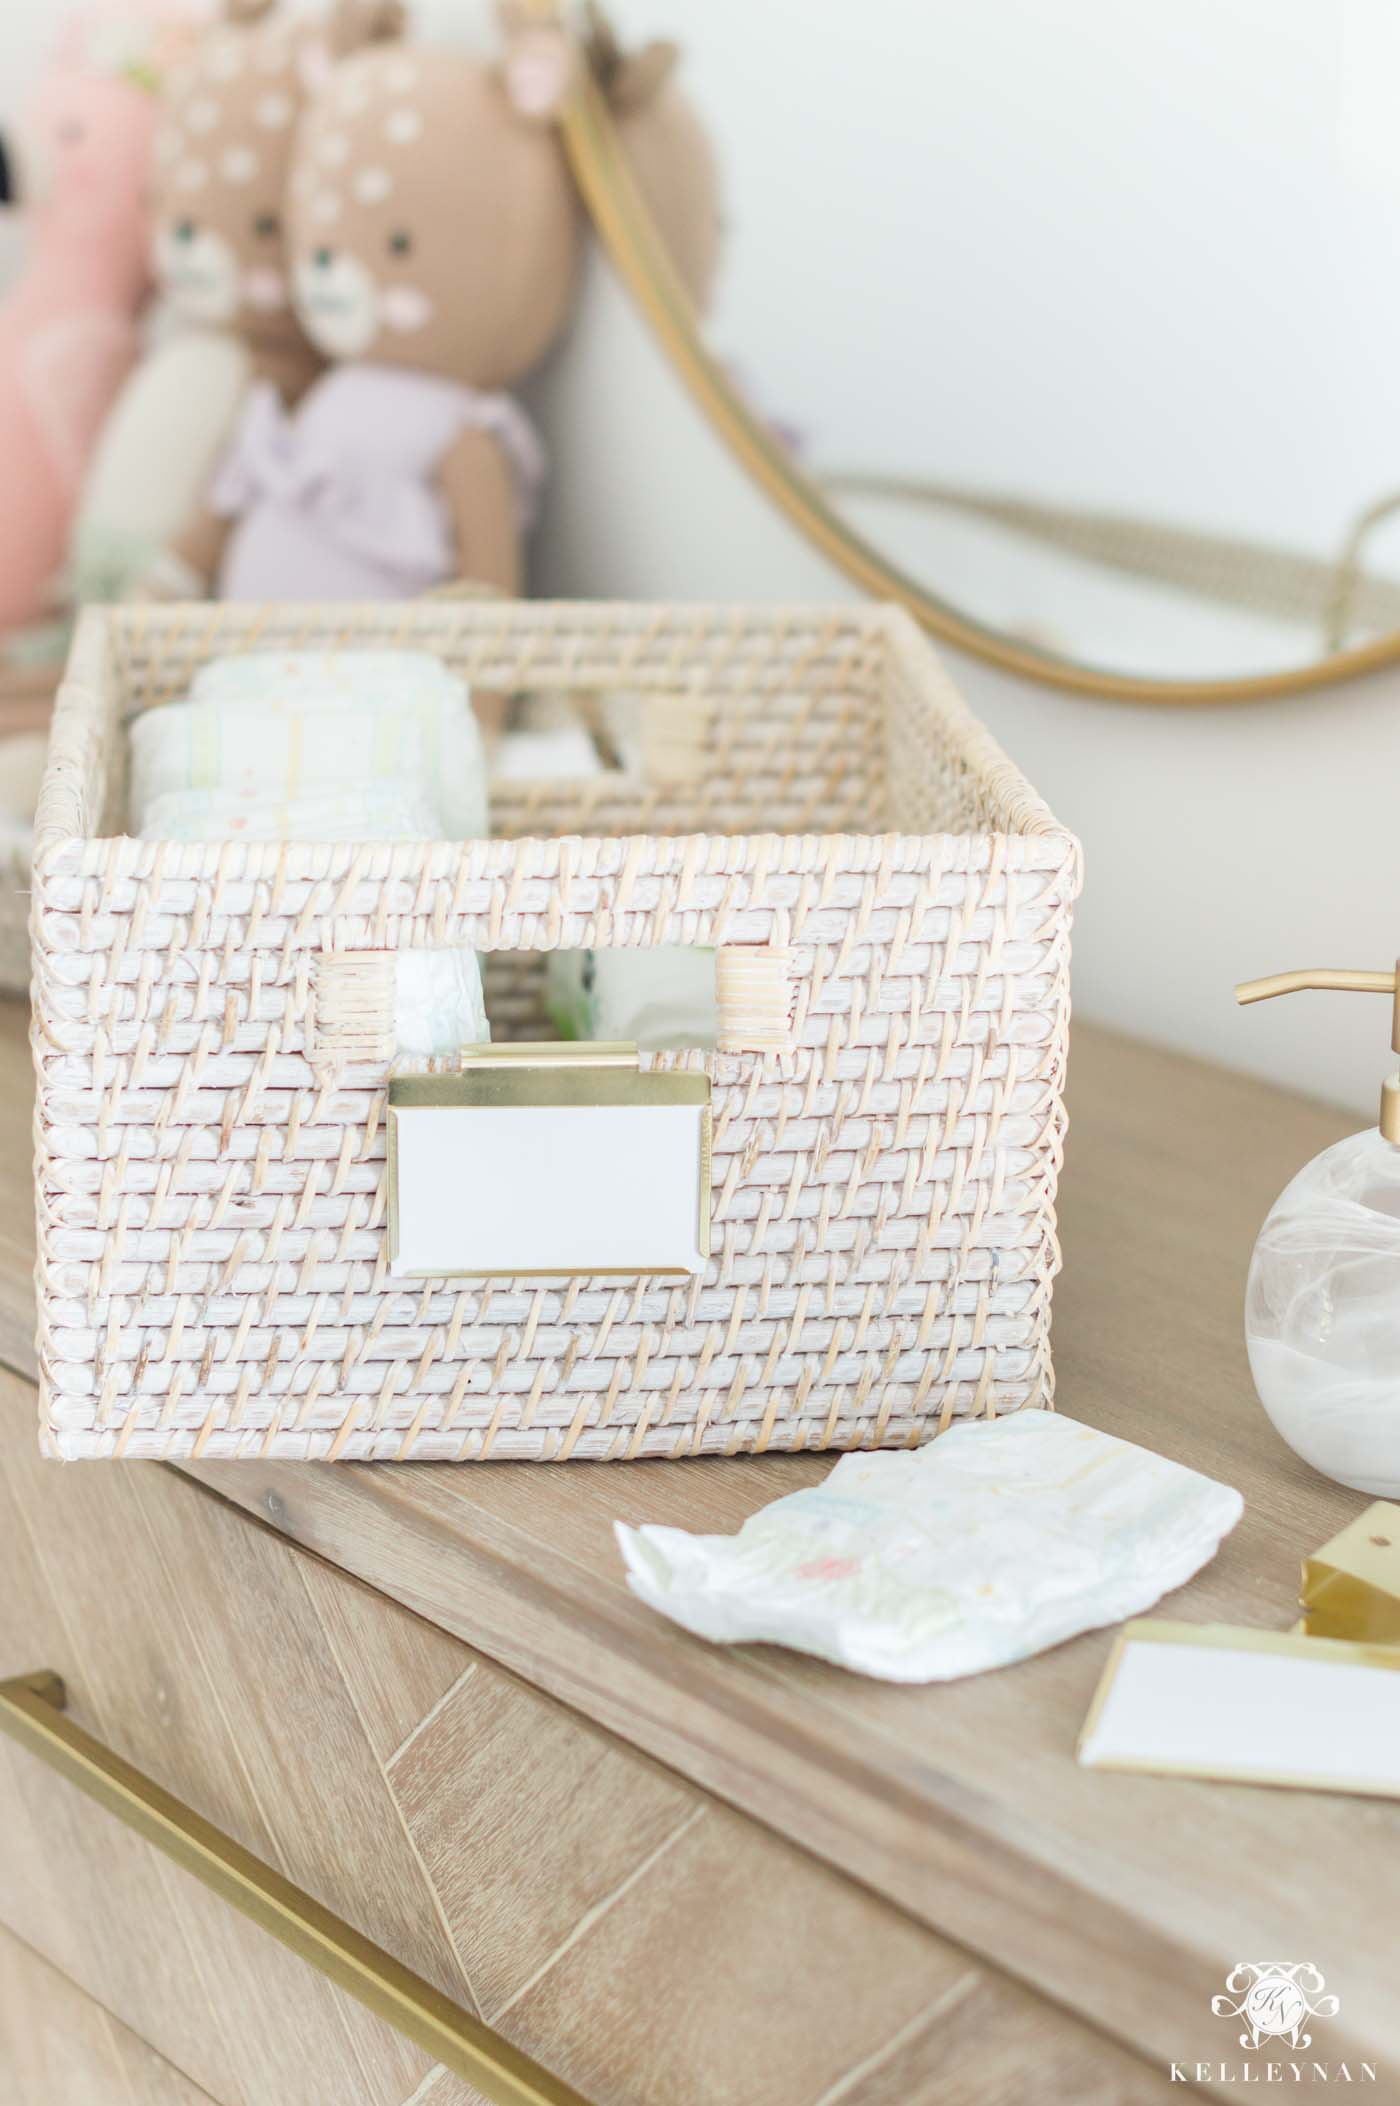 Best baskets and labels for baby room organization